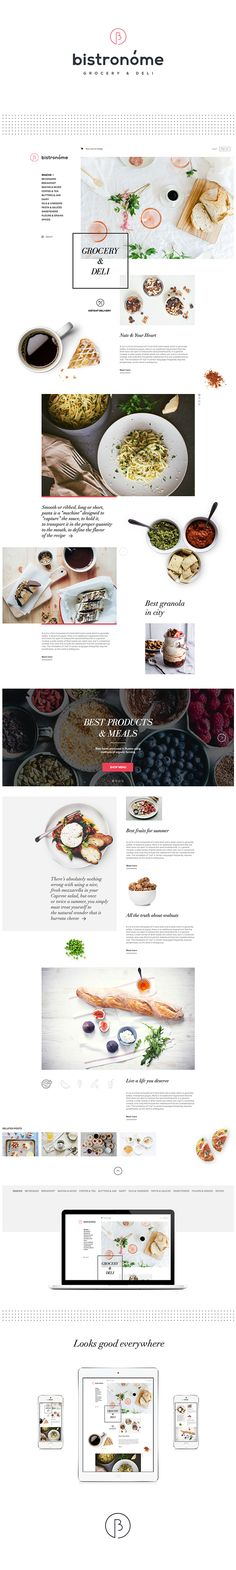 Infographics , UI Design et Web Design - Bistronóme — Naming, Logotype & Website on Web Design Served - CoDesign Magazine Design Web, Design Sites, Menu Design, Food Design, Page Design, Layout Design, Email Design, Website Design Inspiration, Graphic Design Inspiration